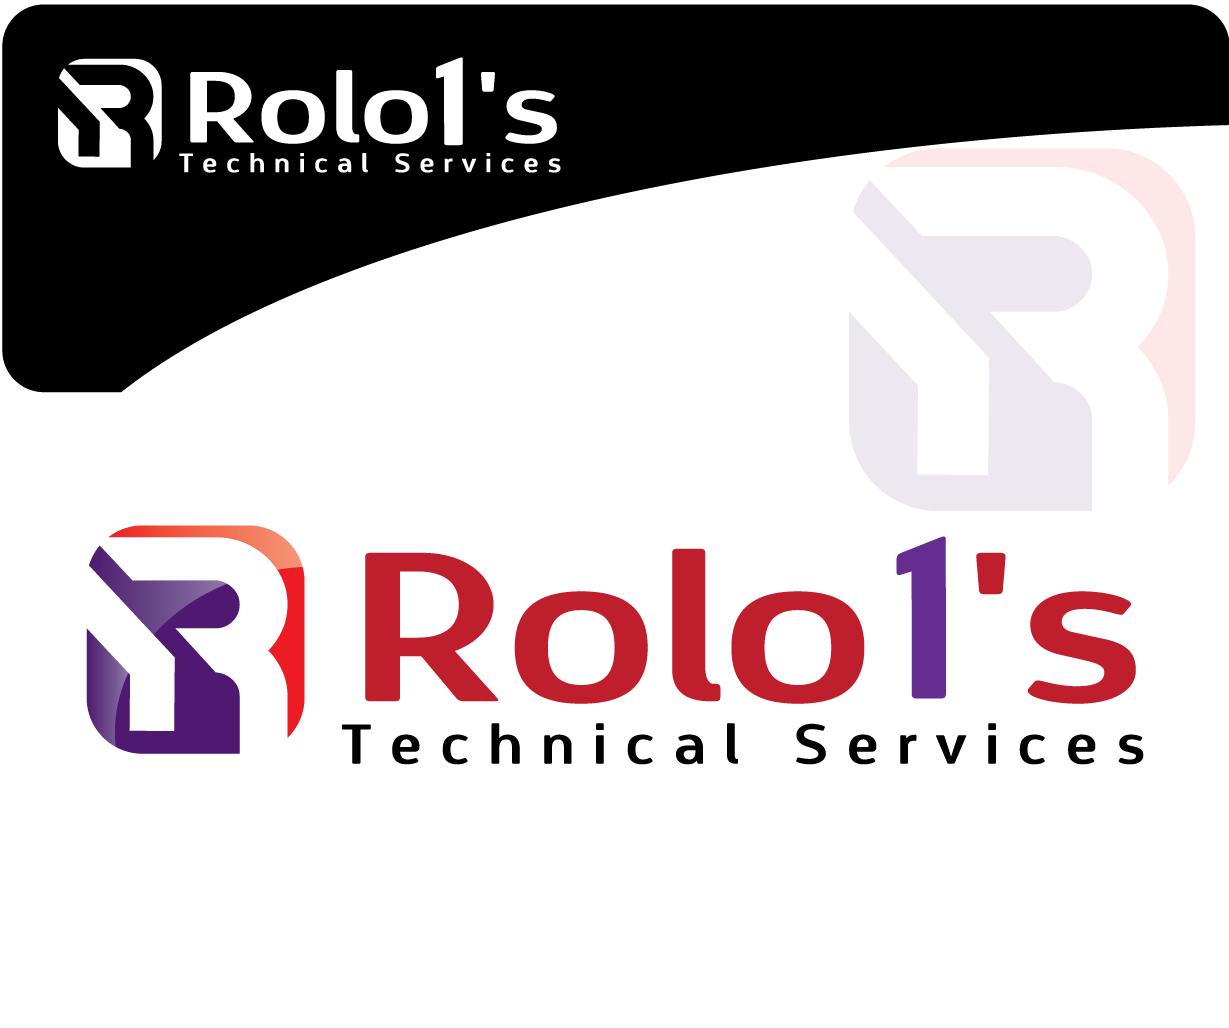 Logo Design by 354studio - Entry No. 54 in the Logo Design Contest Inspiring Logo Design for Rolo1's Technical Services.